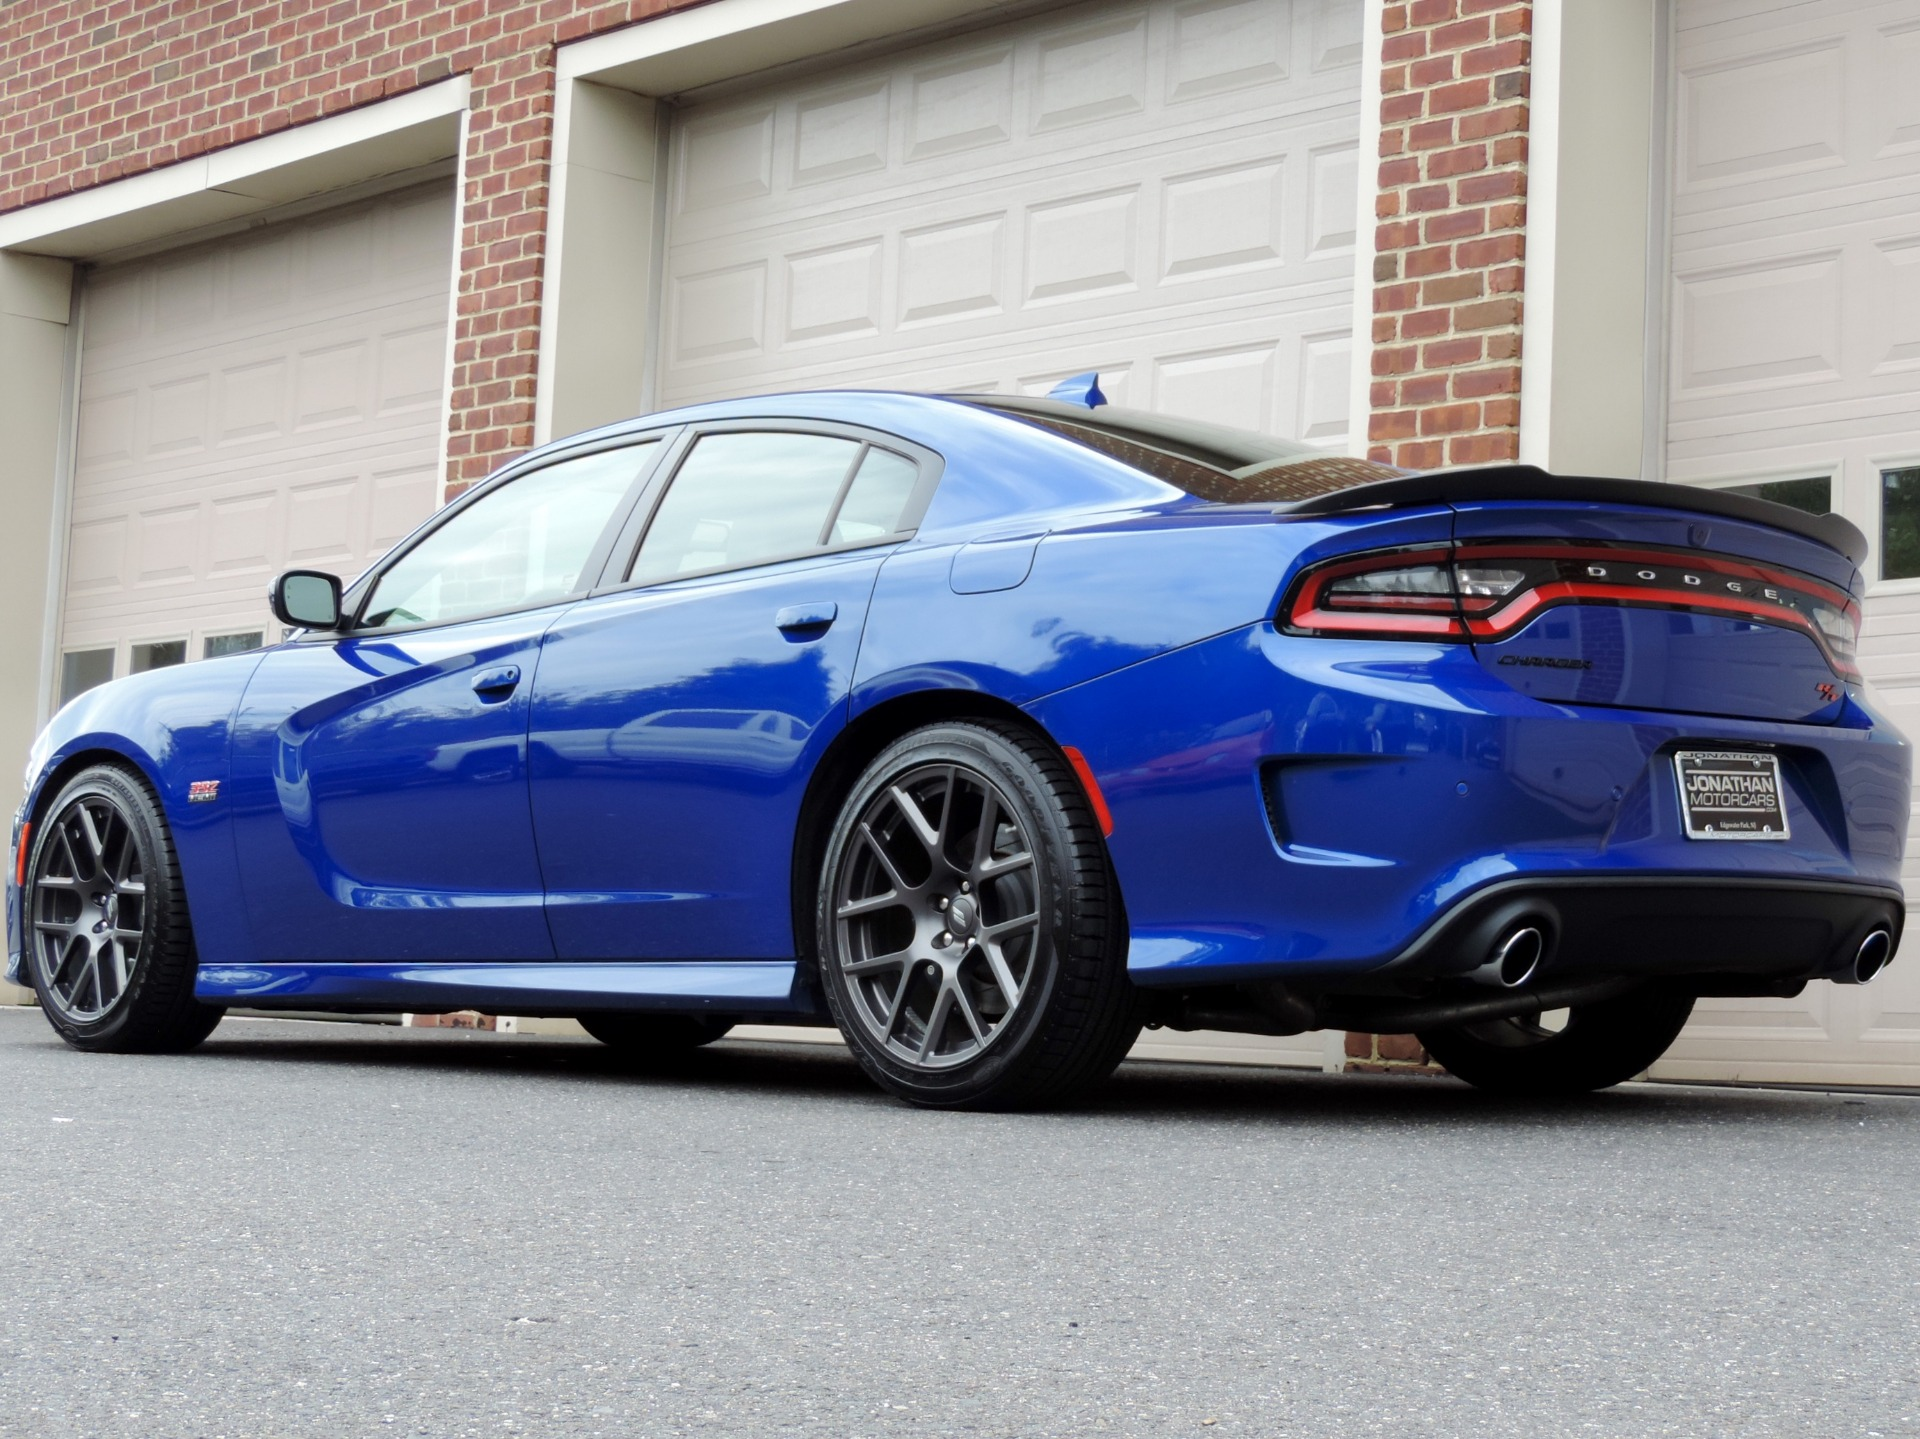 Dodge Dealers In Nj >> 2018 Dodge Charger R/T Scat Pack Stock # 218081 for sale ...